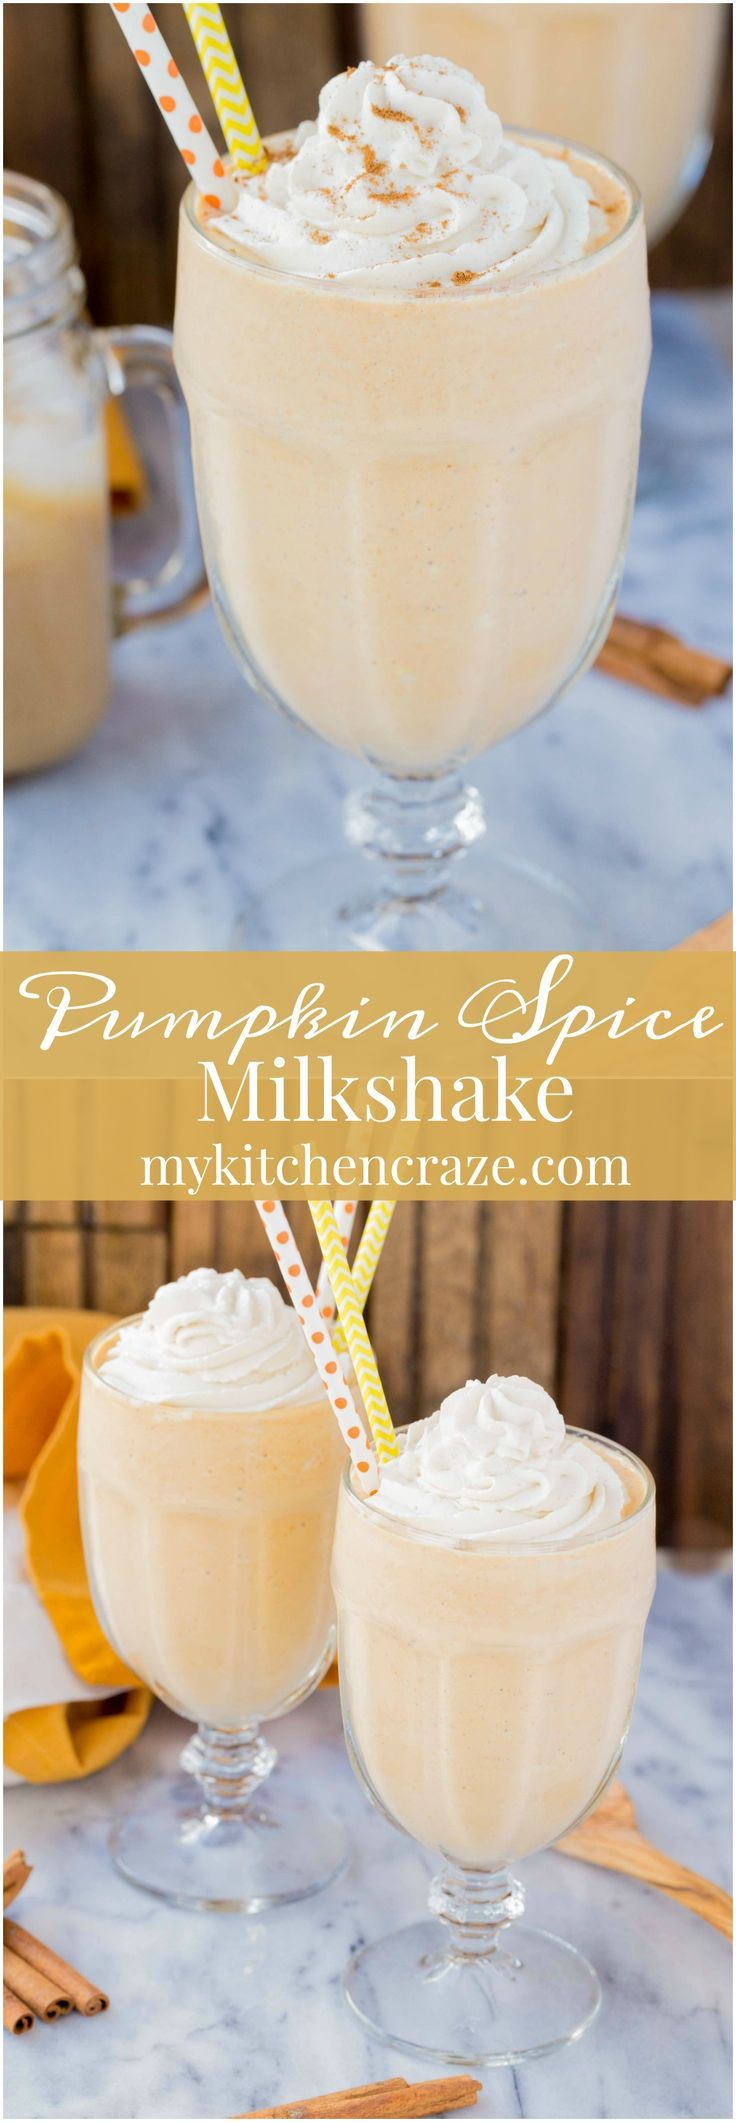 Pumpkin Spice Milkshake ~ mykitchencraze.com ~ Start your Fall season off right and make this delicious Pumpkin Spice Milkshake. It's sure to brighten up your day! Filled with all the…